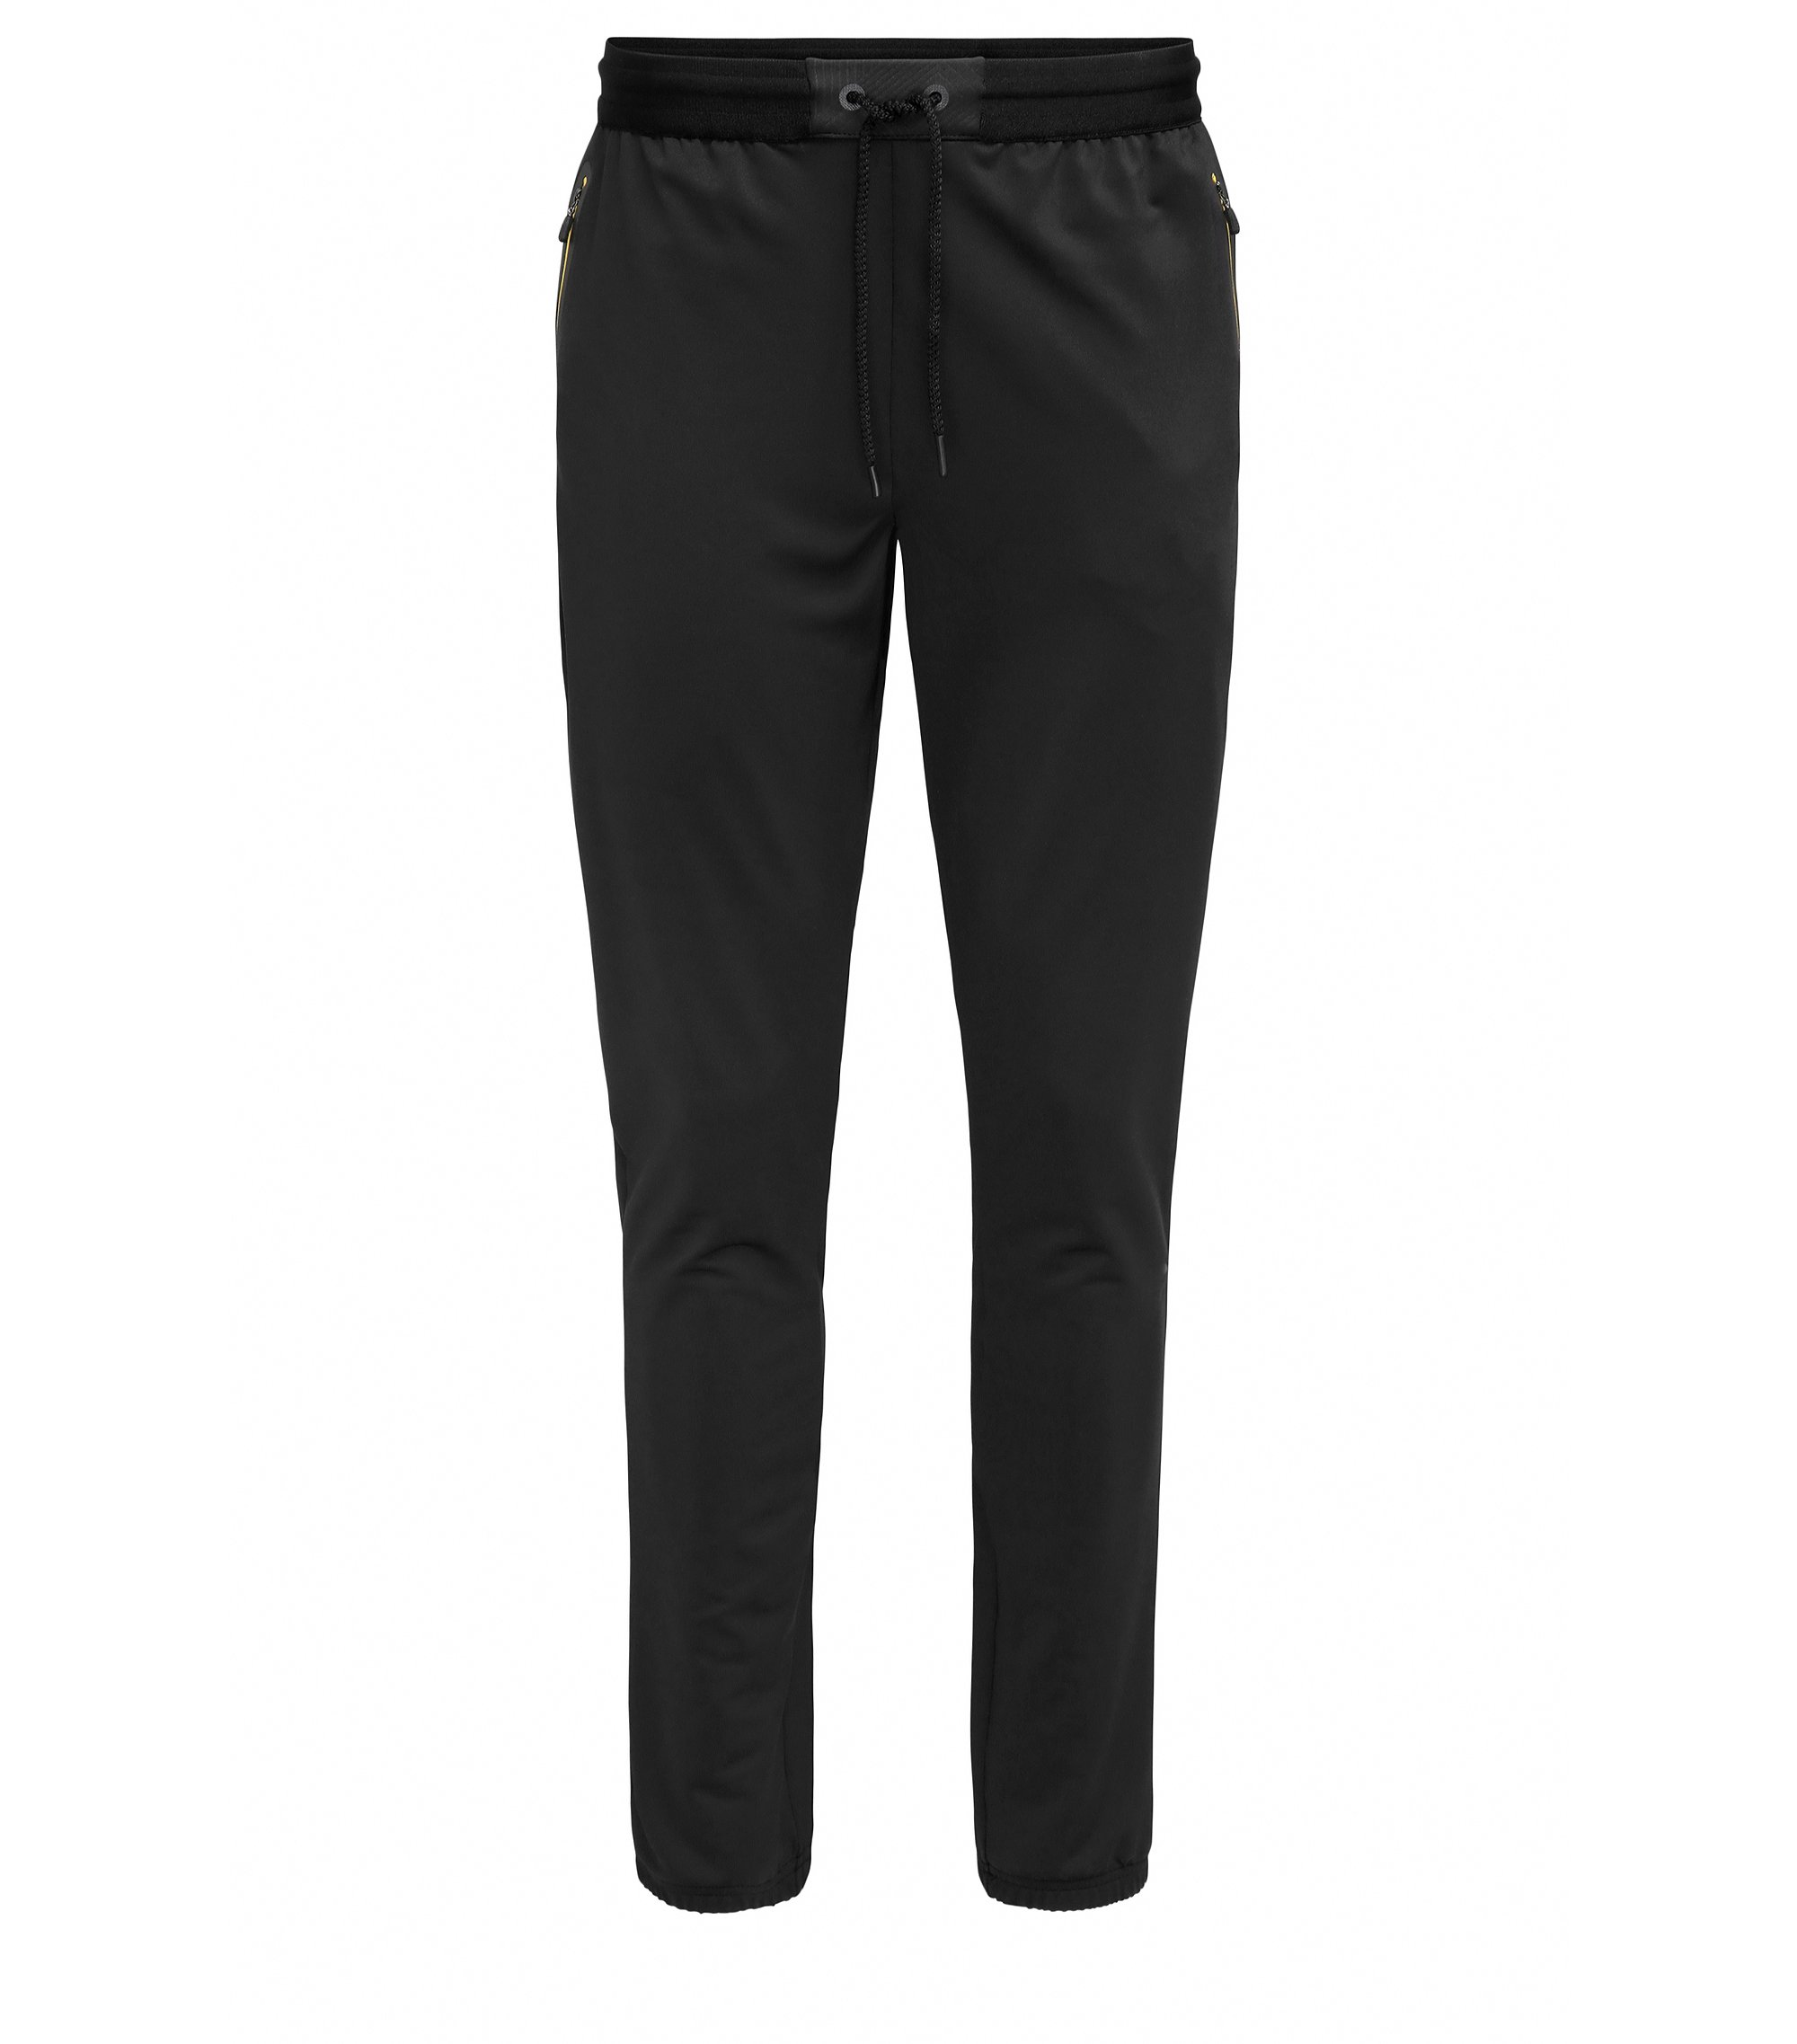 Slim-fit jersey trousers in technical fabric, Negro